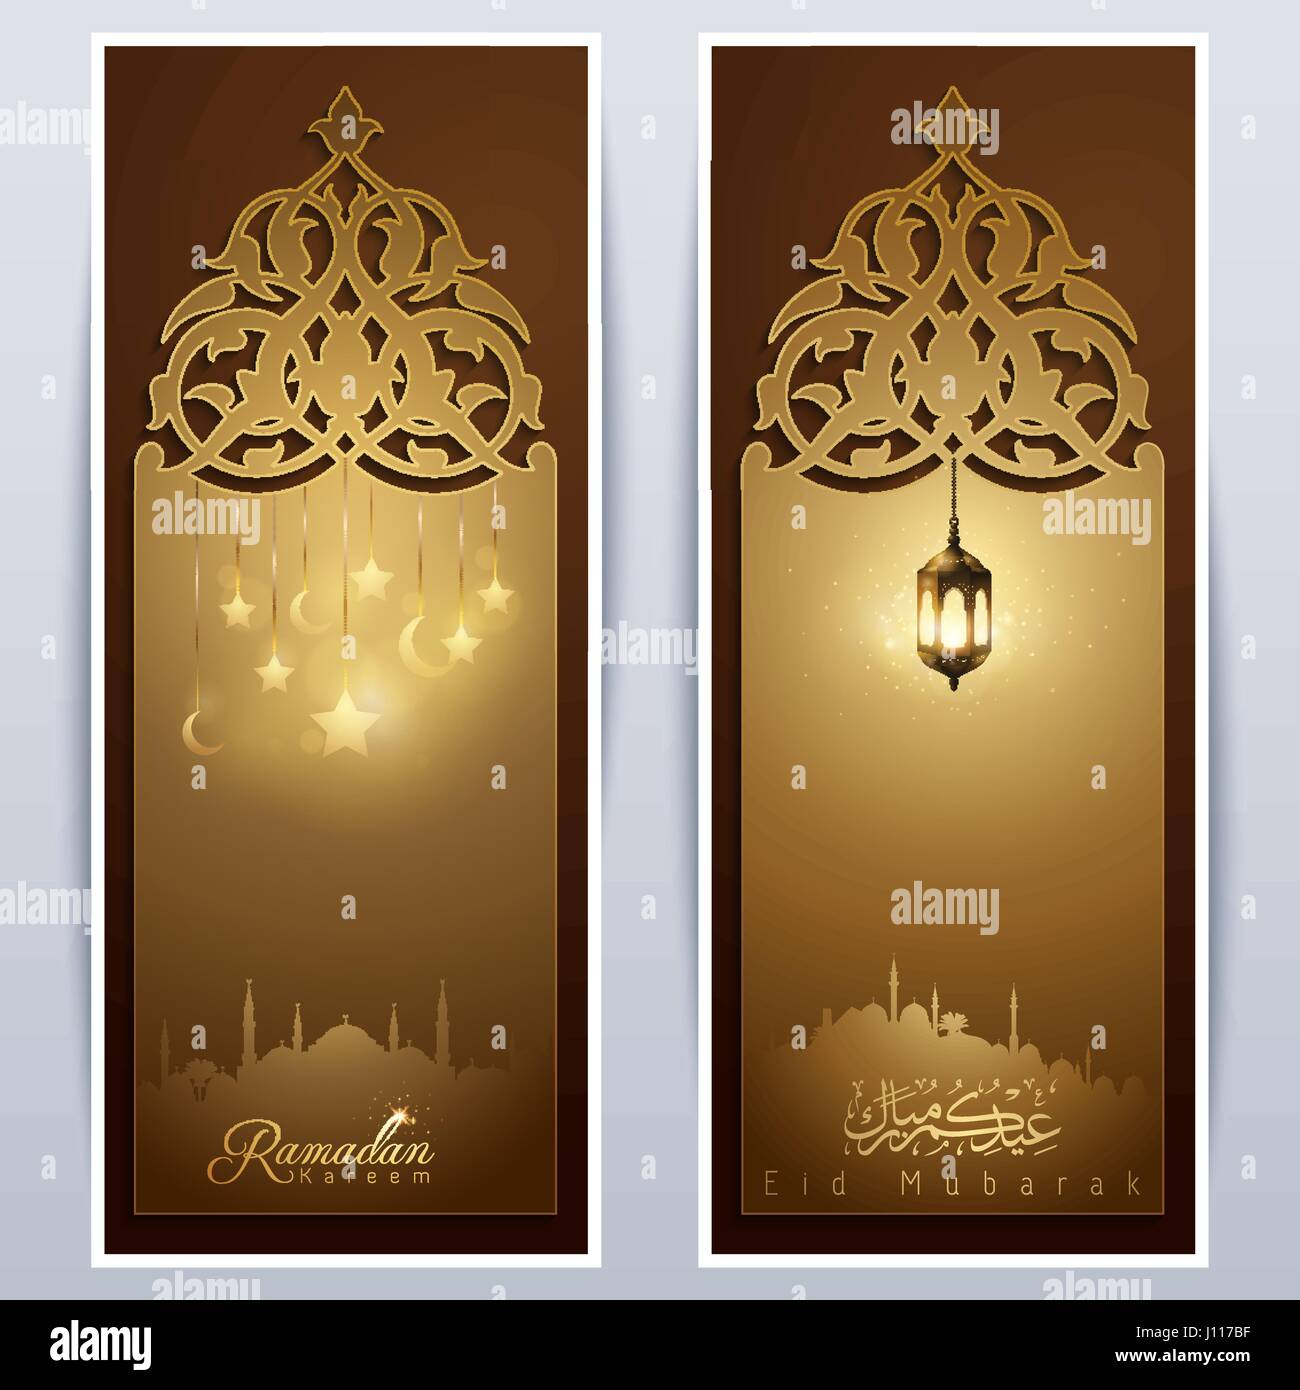 Islamic vector design eid mubarak greeting template roll up banner islamic vector design eid mubarak greeting template roll up banner background with arabic lantern glow star and crescent m4hsunfo